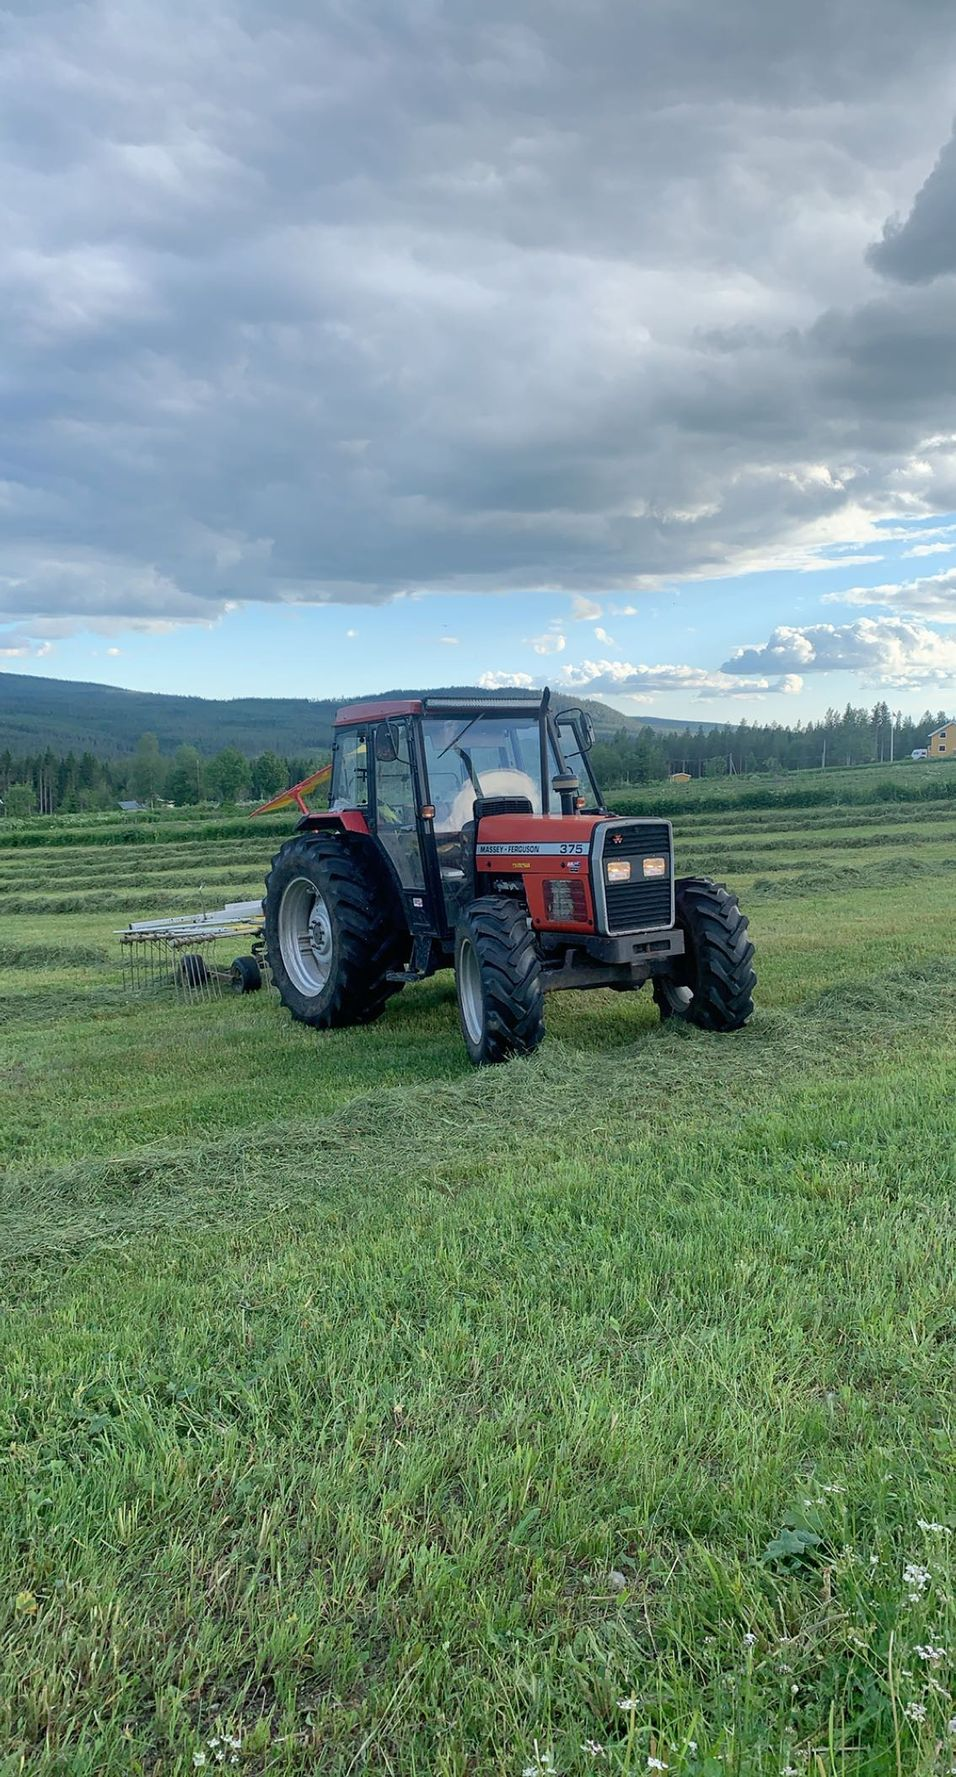 Tractor on freshly cut grass in Norway